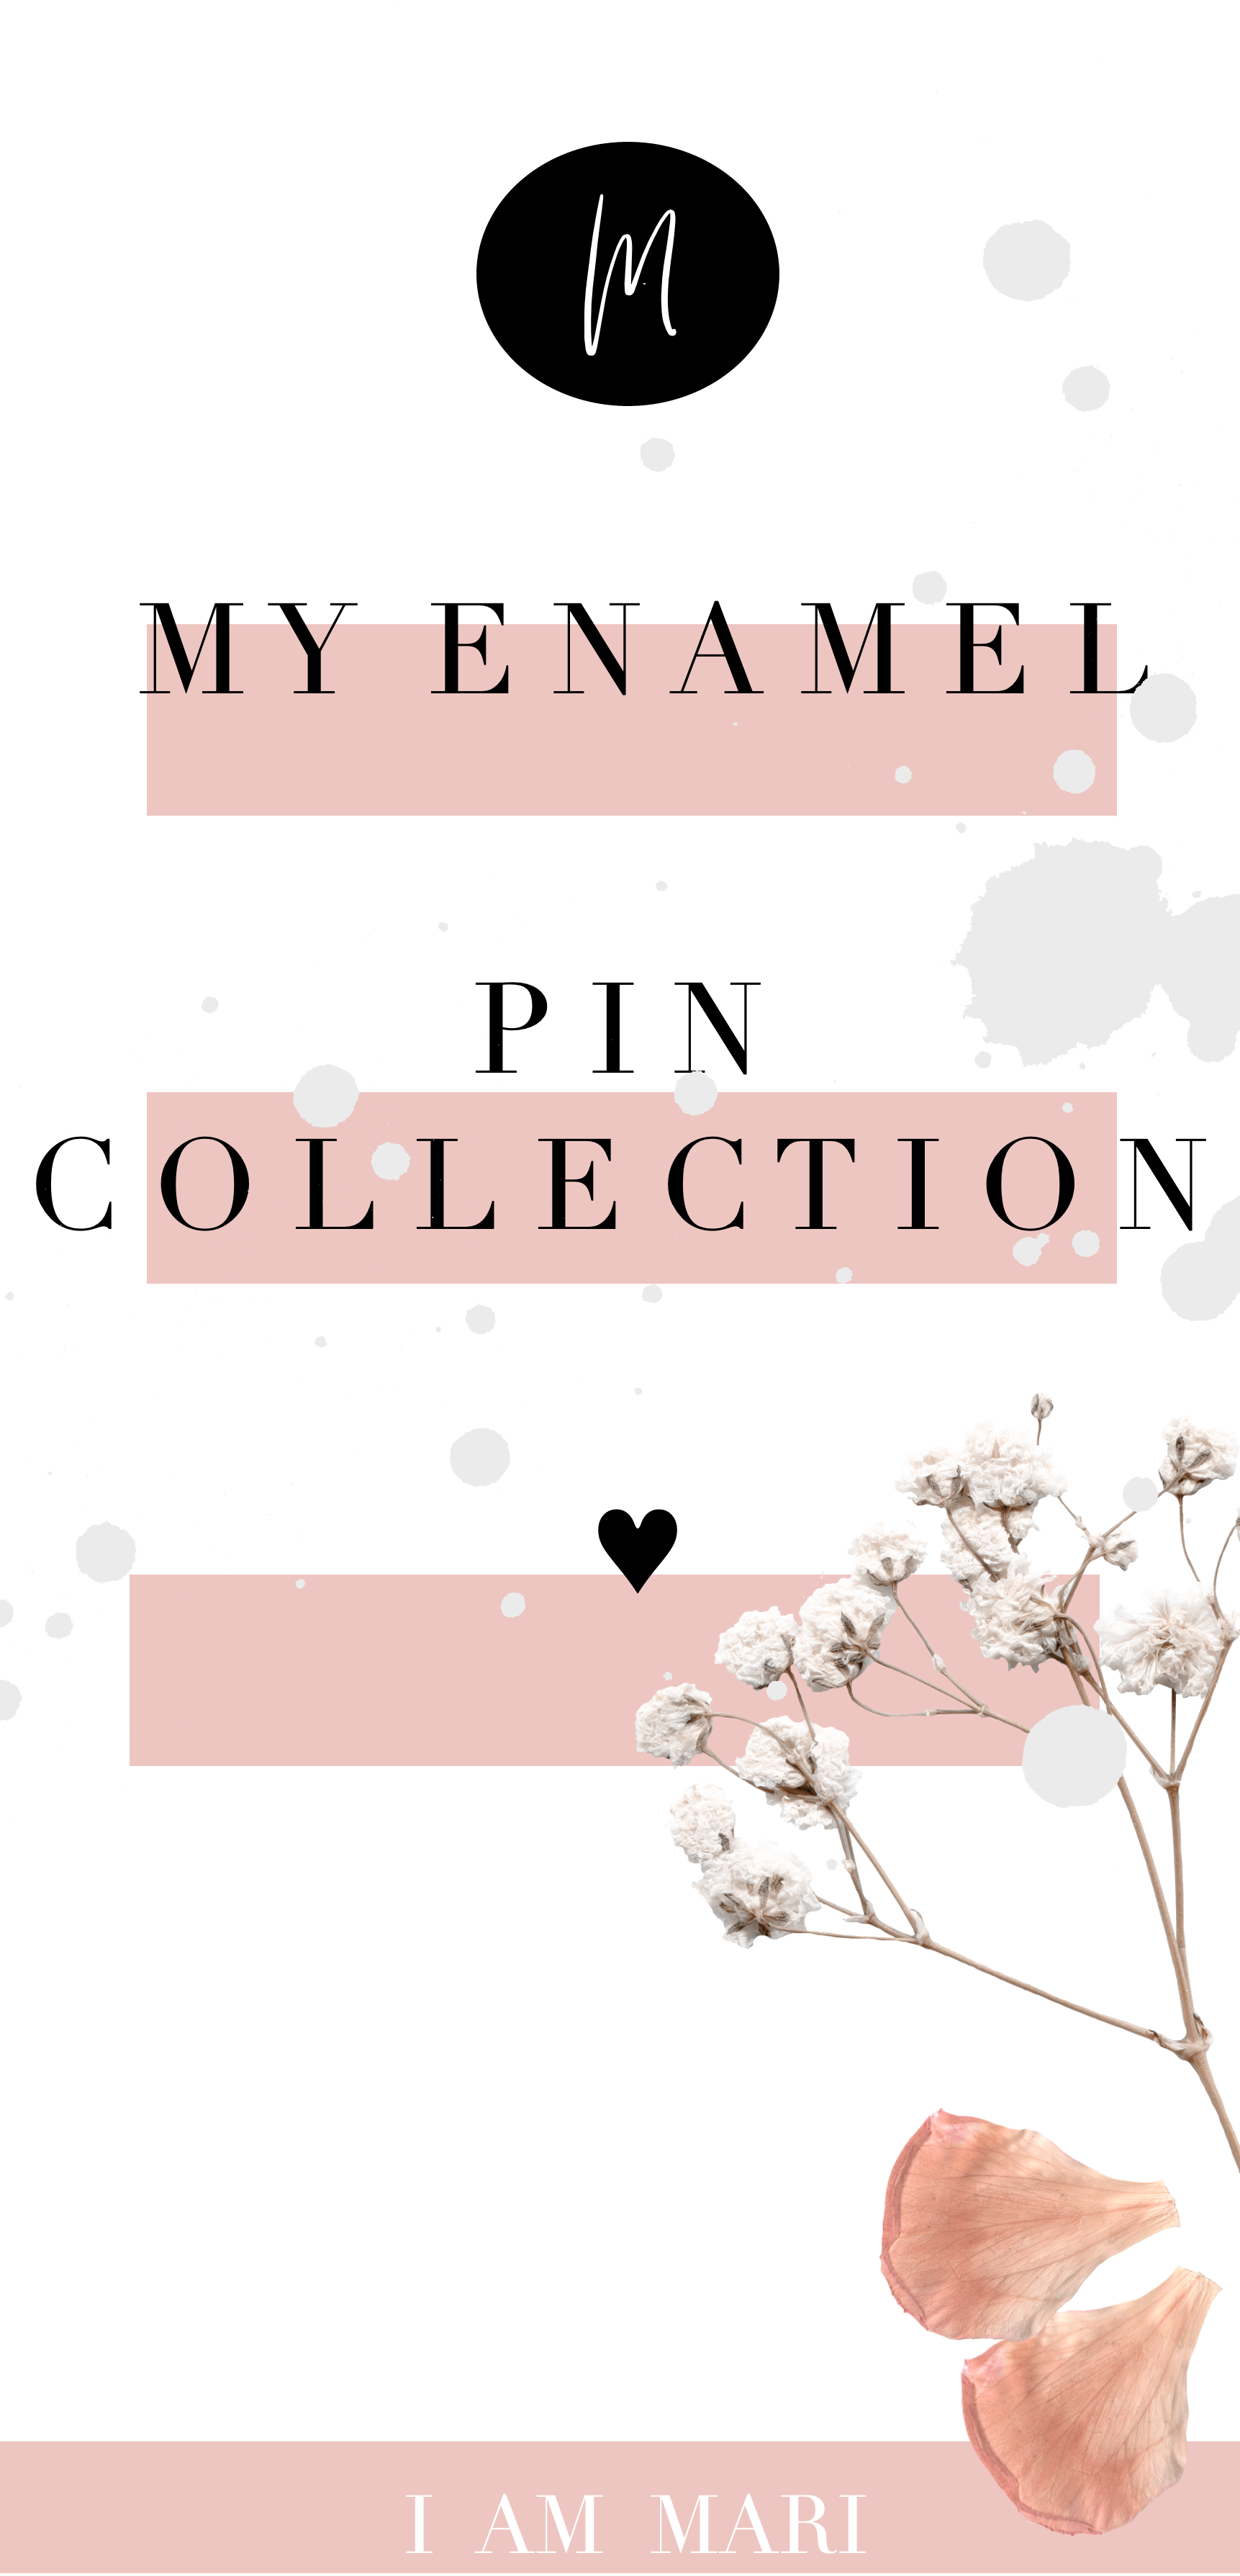 (Self-Isolation Series ) - My Enamel Pin Collection